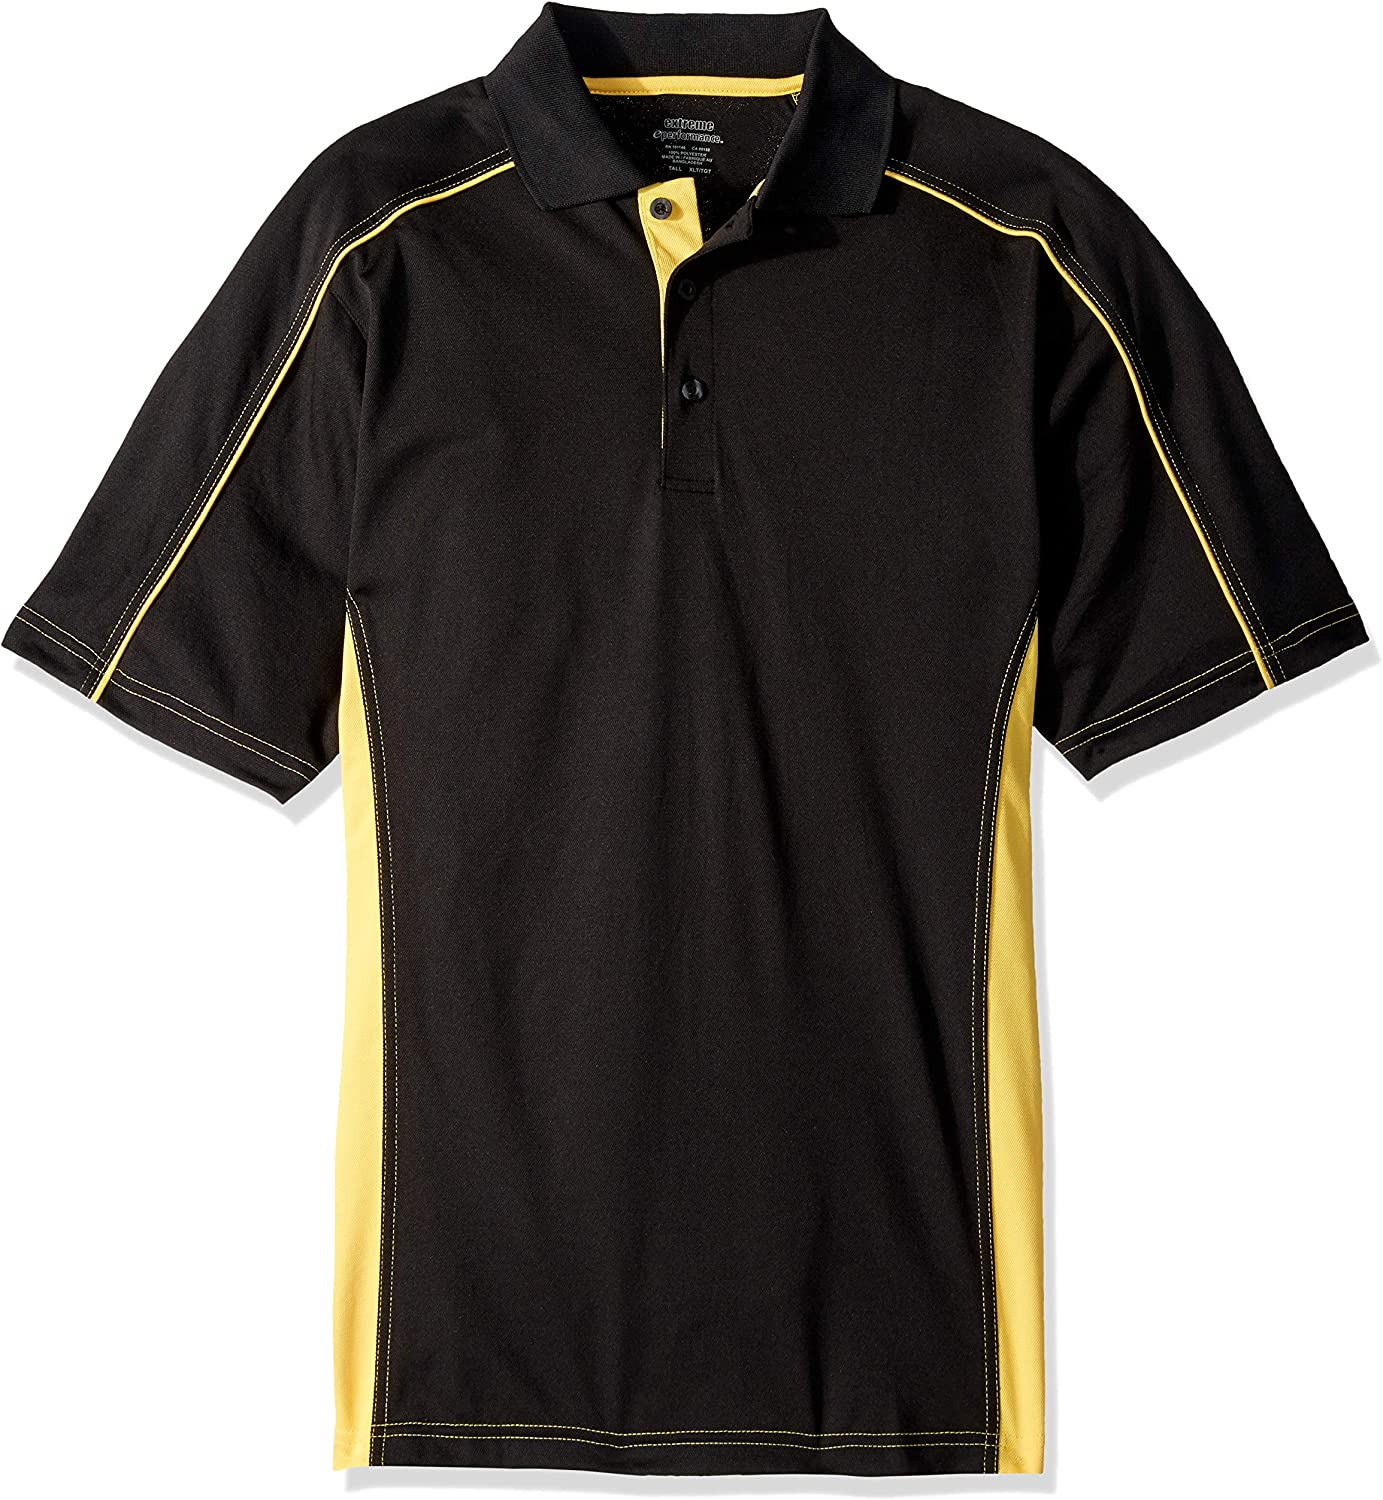 Ashe Xtream Mens Tall Size Acty-85113t-tall Fuse Snag Protection Plus Colorblock Polo